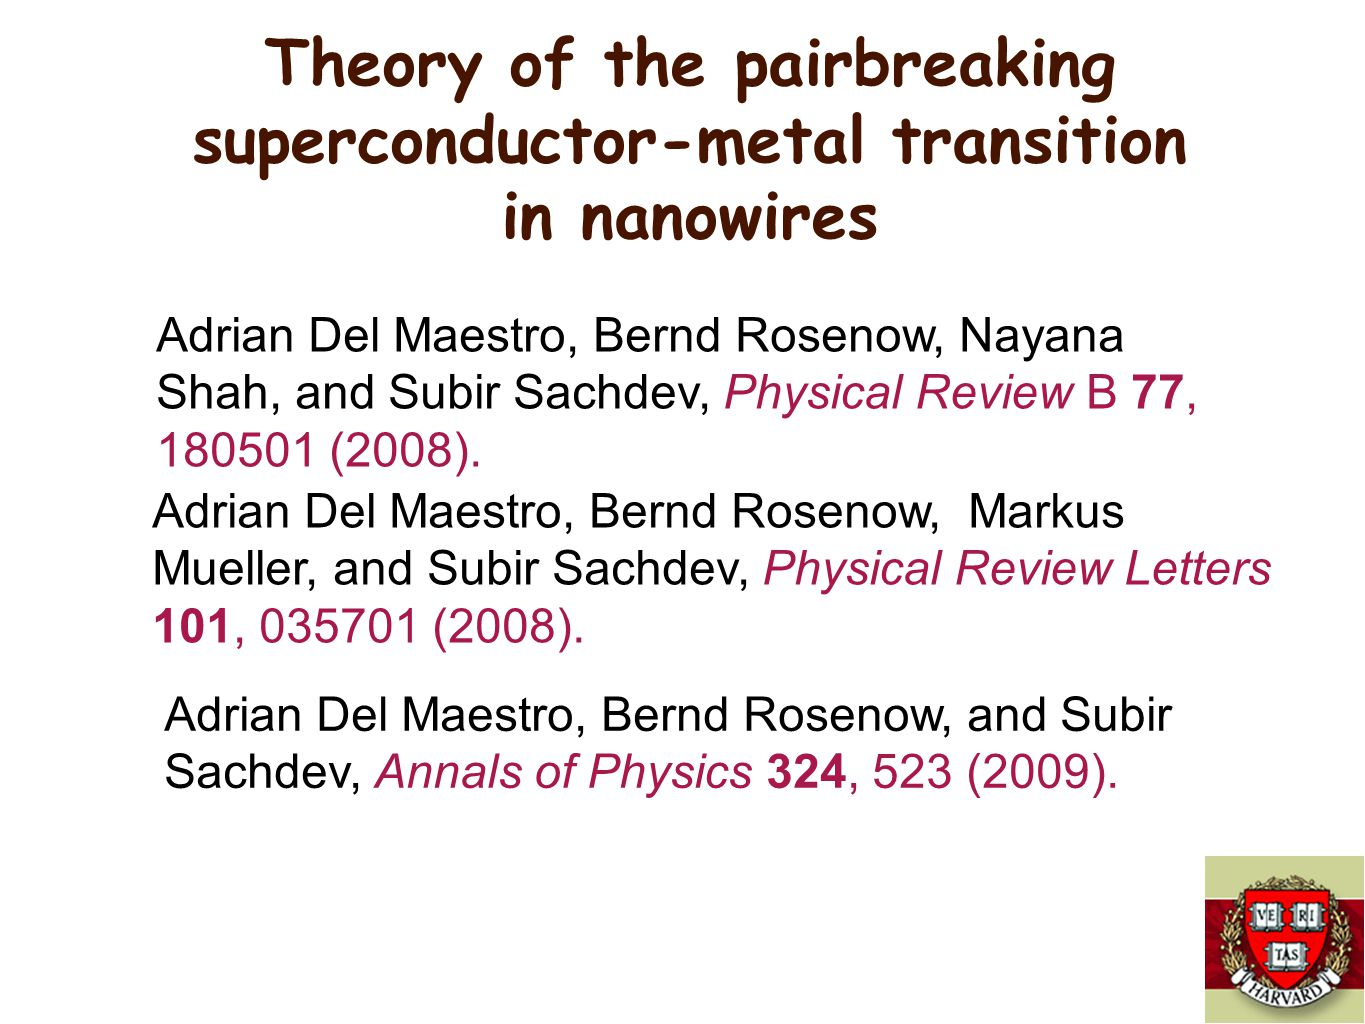 Theory of the pairbreaking superconductor-metal transition in nanowires Adrian Del Maestro, Bernd Rosenow, Nayana Shah, and Subir Sachdev, Physical Review B 77, 180501 (2008).